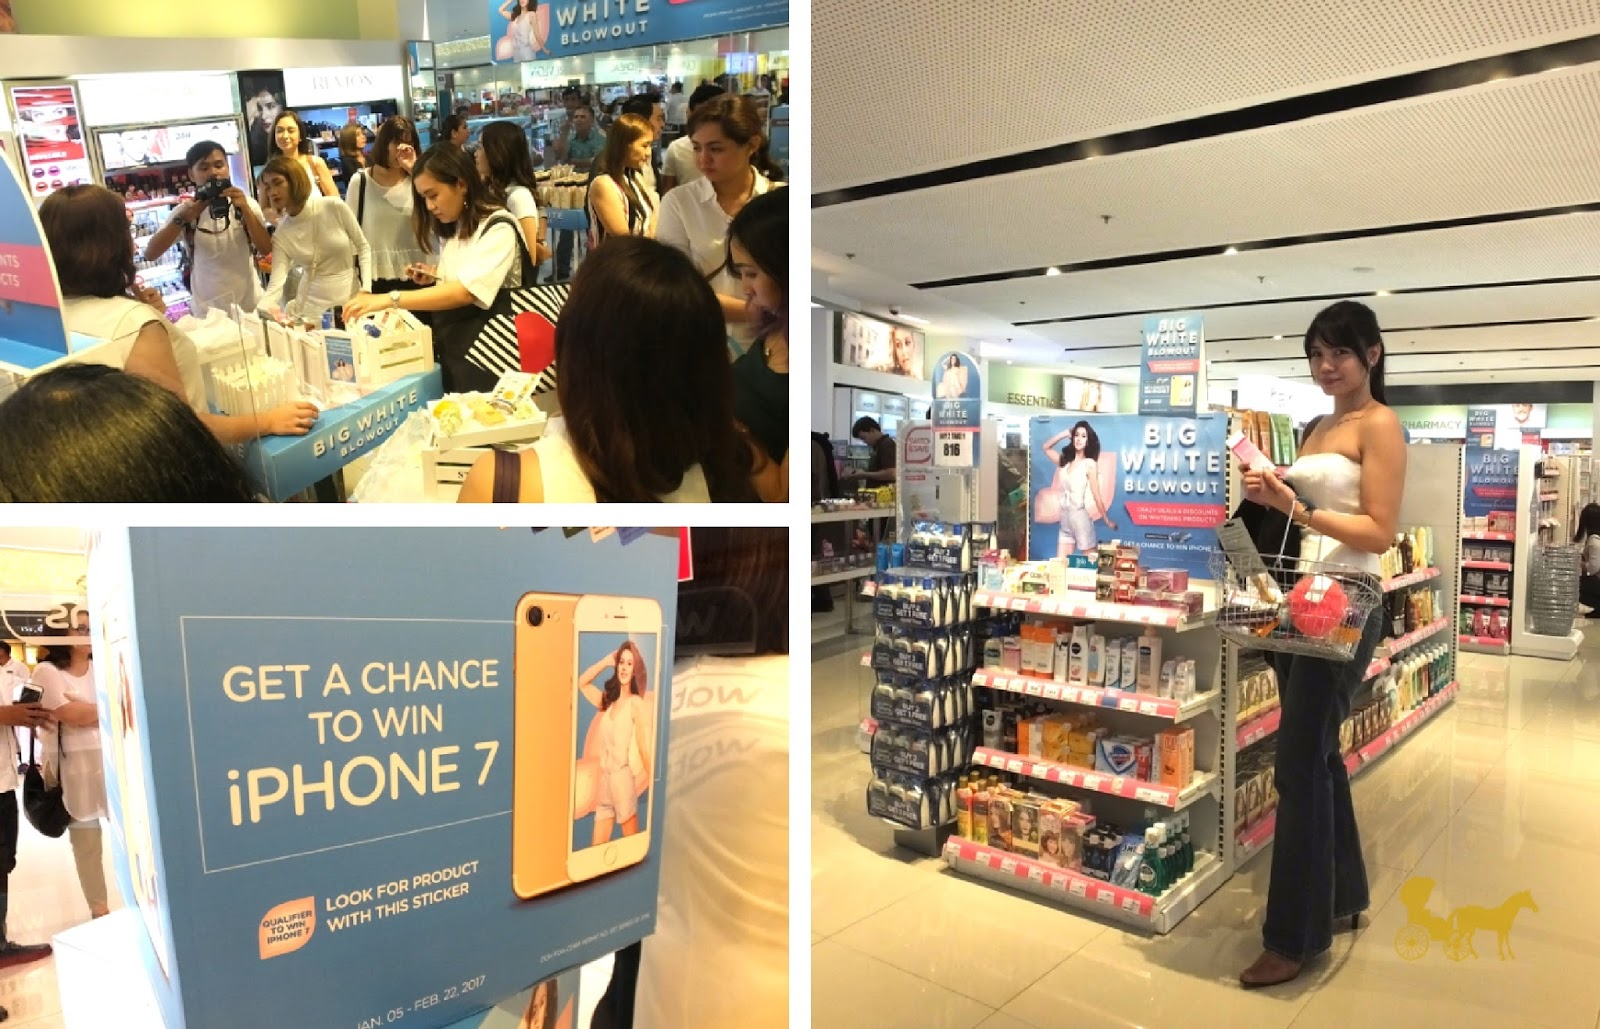 watsons-big-white-blowout-sale-iphone-7-contest